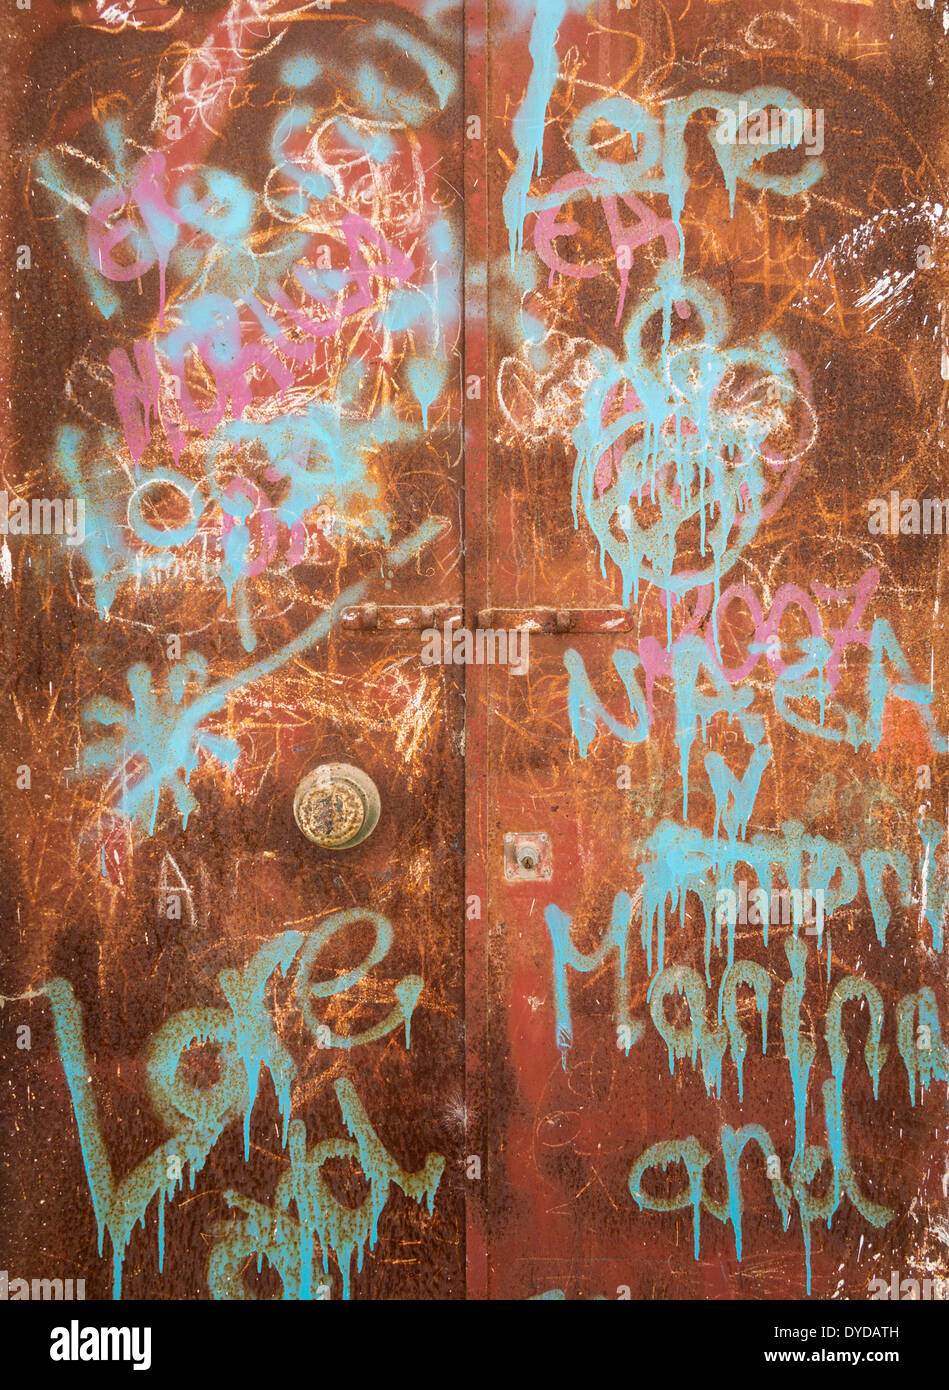 Drawings and writings on a rusty door, Arcos de la Frontera, Cádiz province, Andalusia, Spain - Stock Image